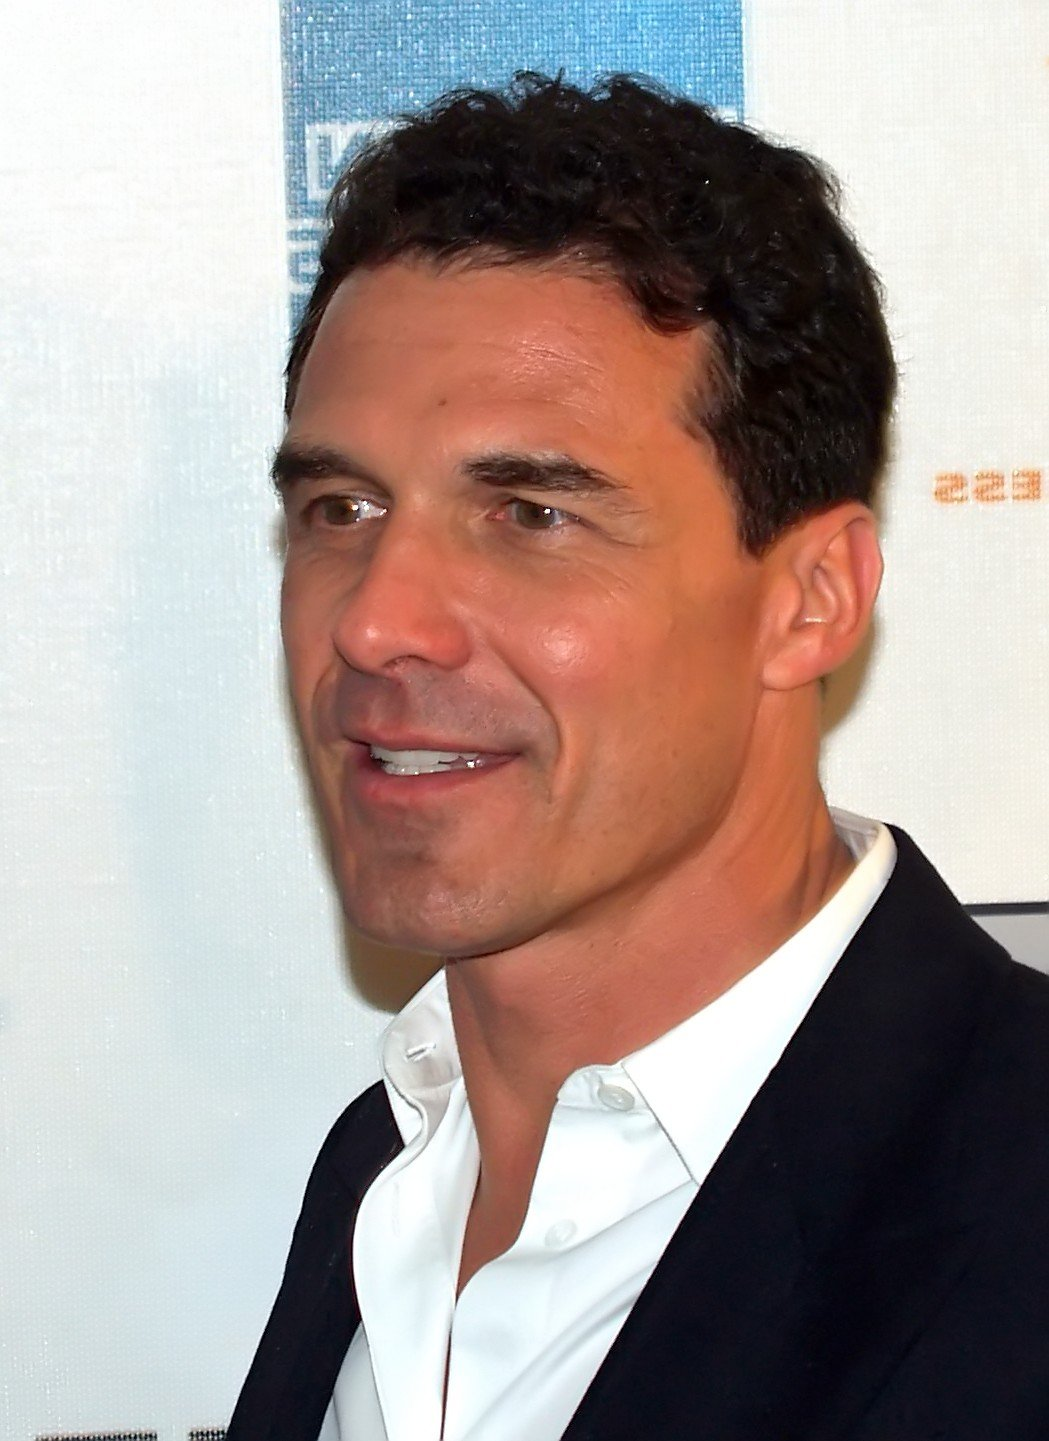 André Balazs Image Source: Wikimedia Commons